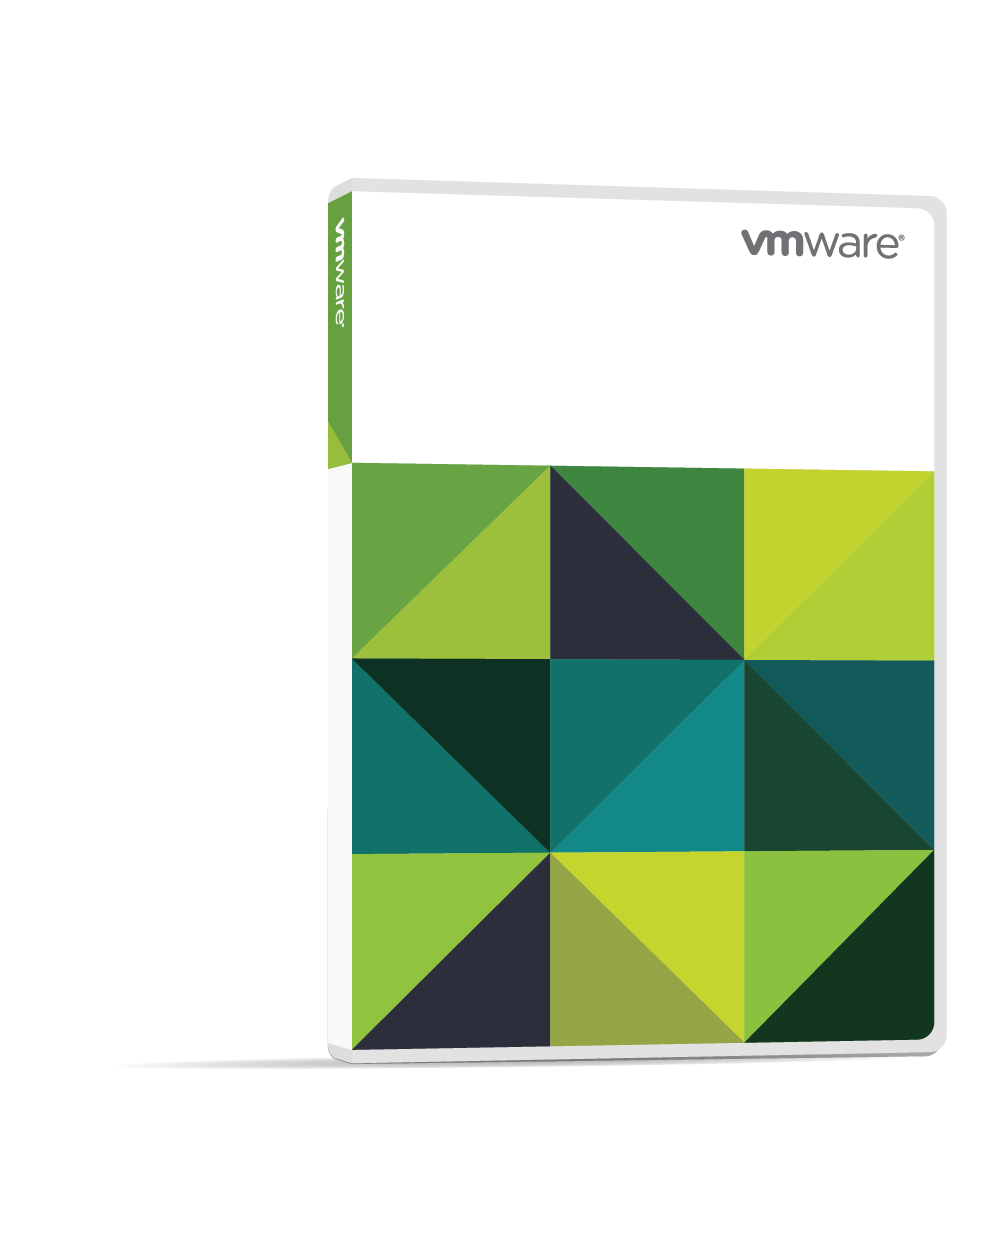 vSphere Remote Office Branch Office Advanced